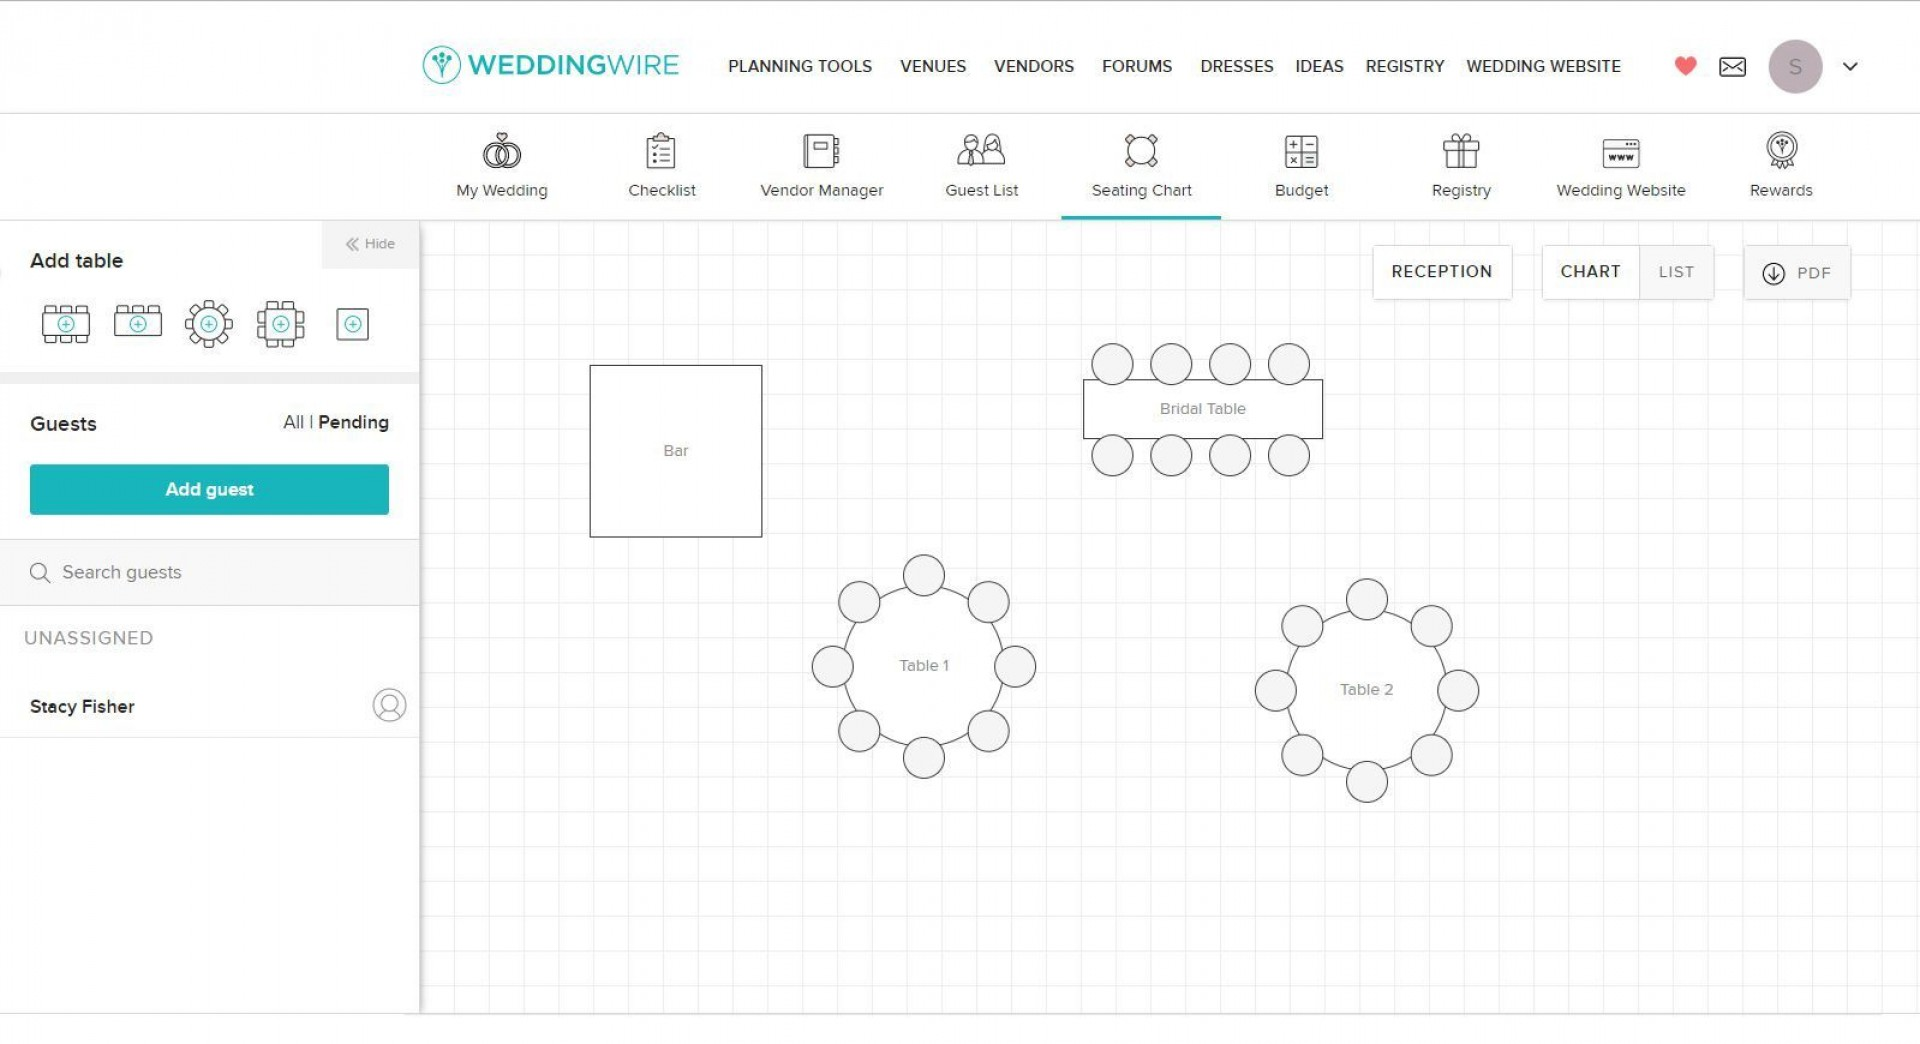 010 Impressive Seating Chart Template Excel High Resolution  Wedding Plan Free Table Microsoft1920